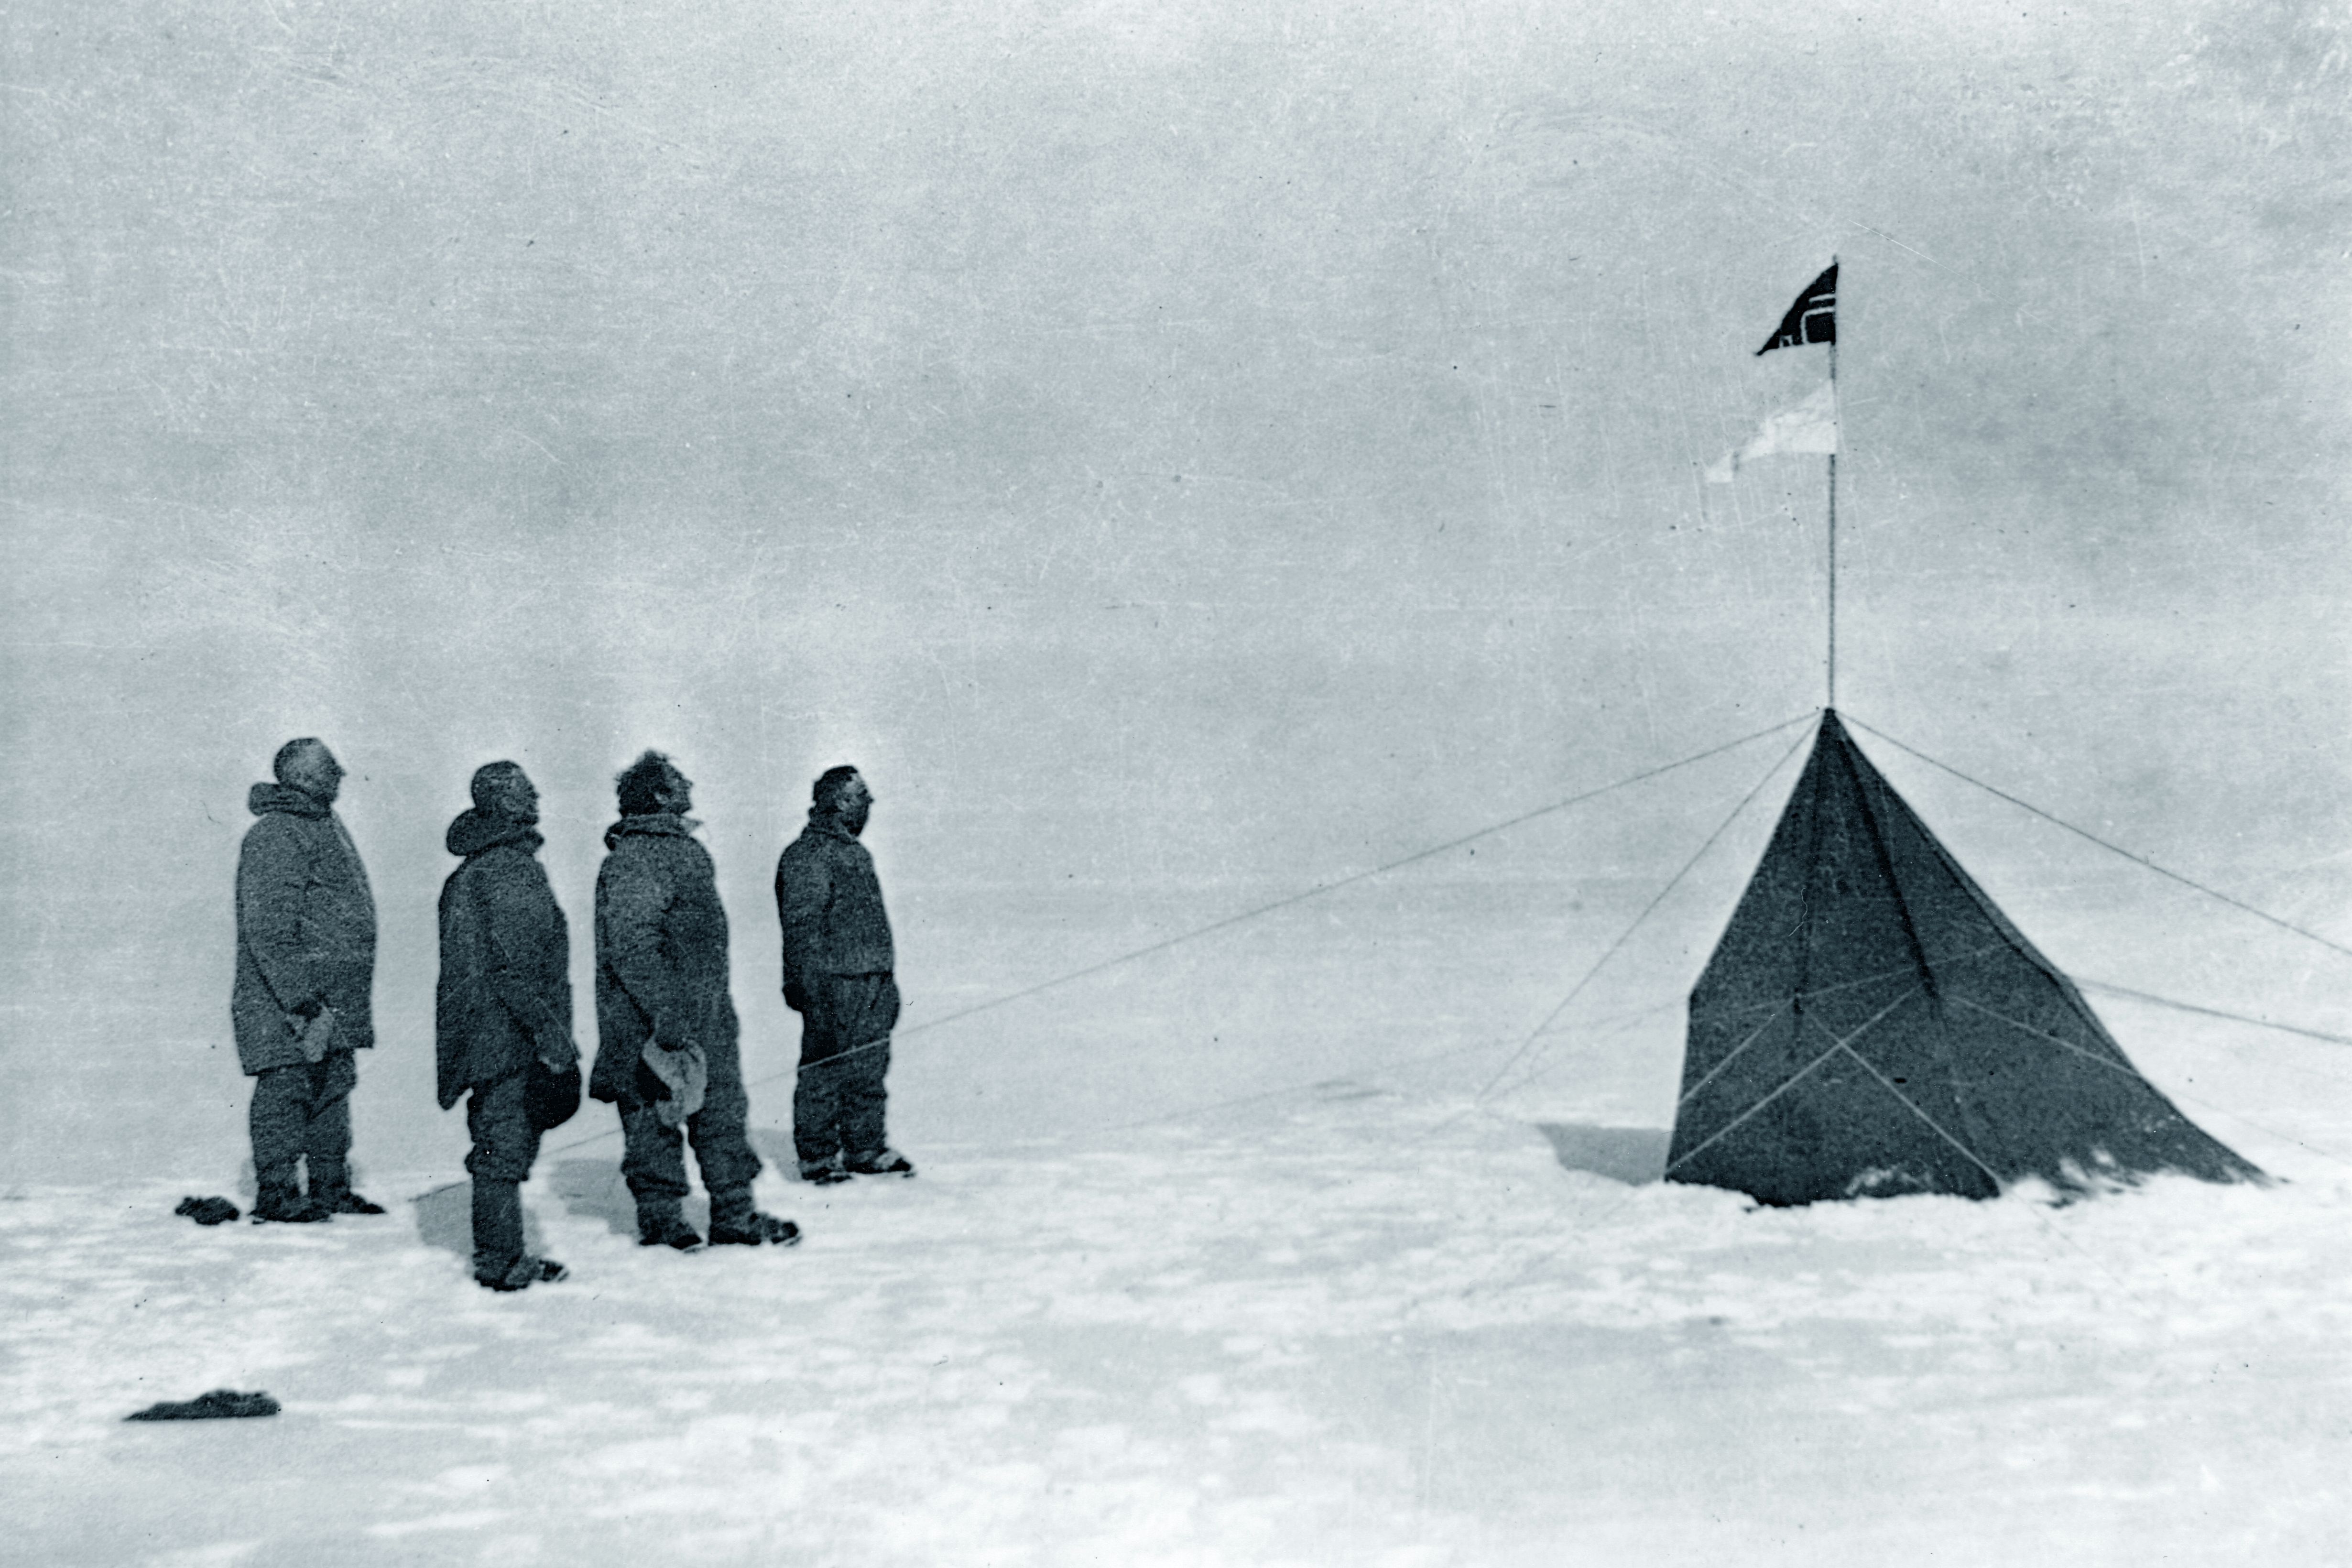 Amundsen at the South Pole. Photo: Wikipedia